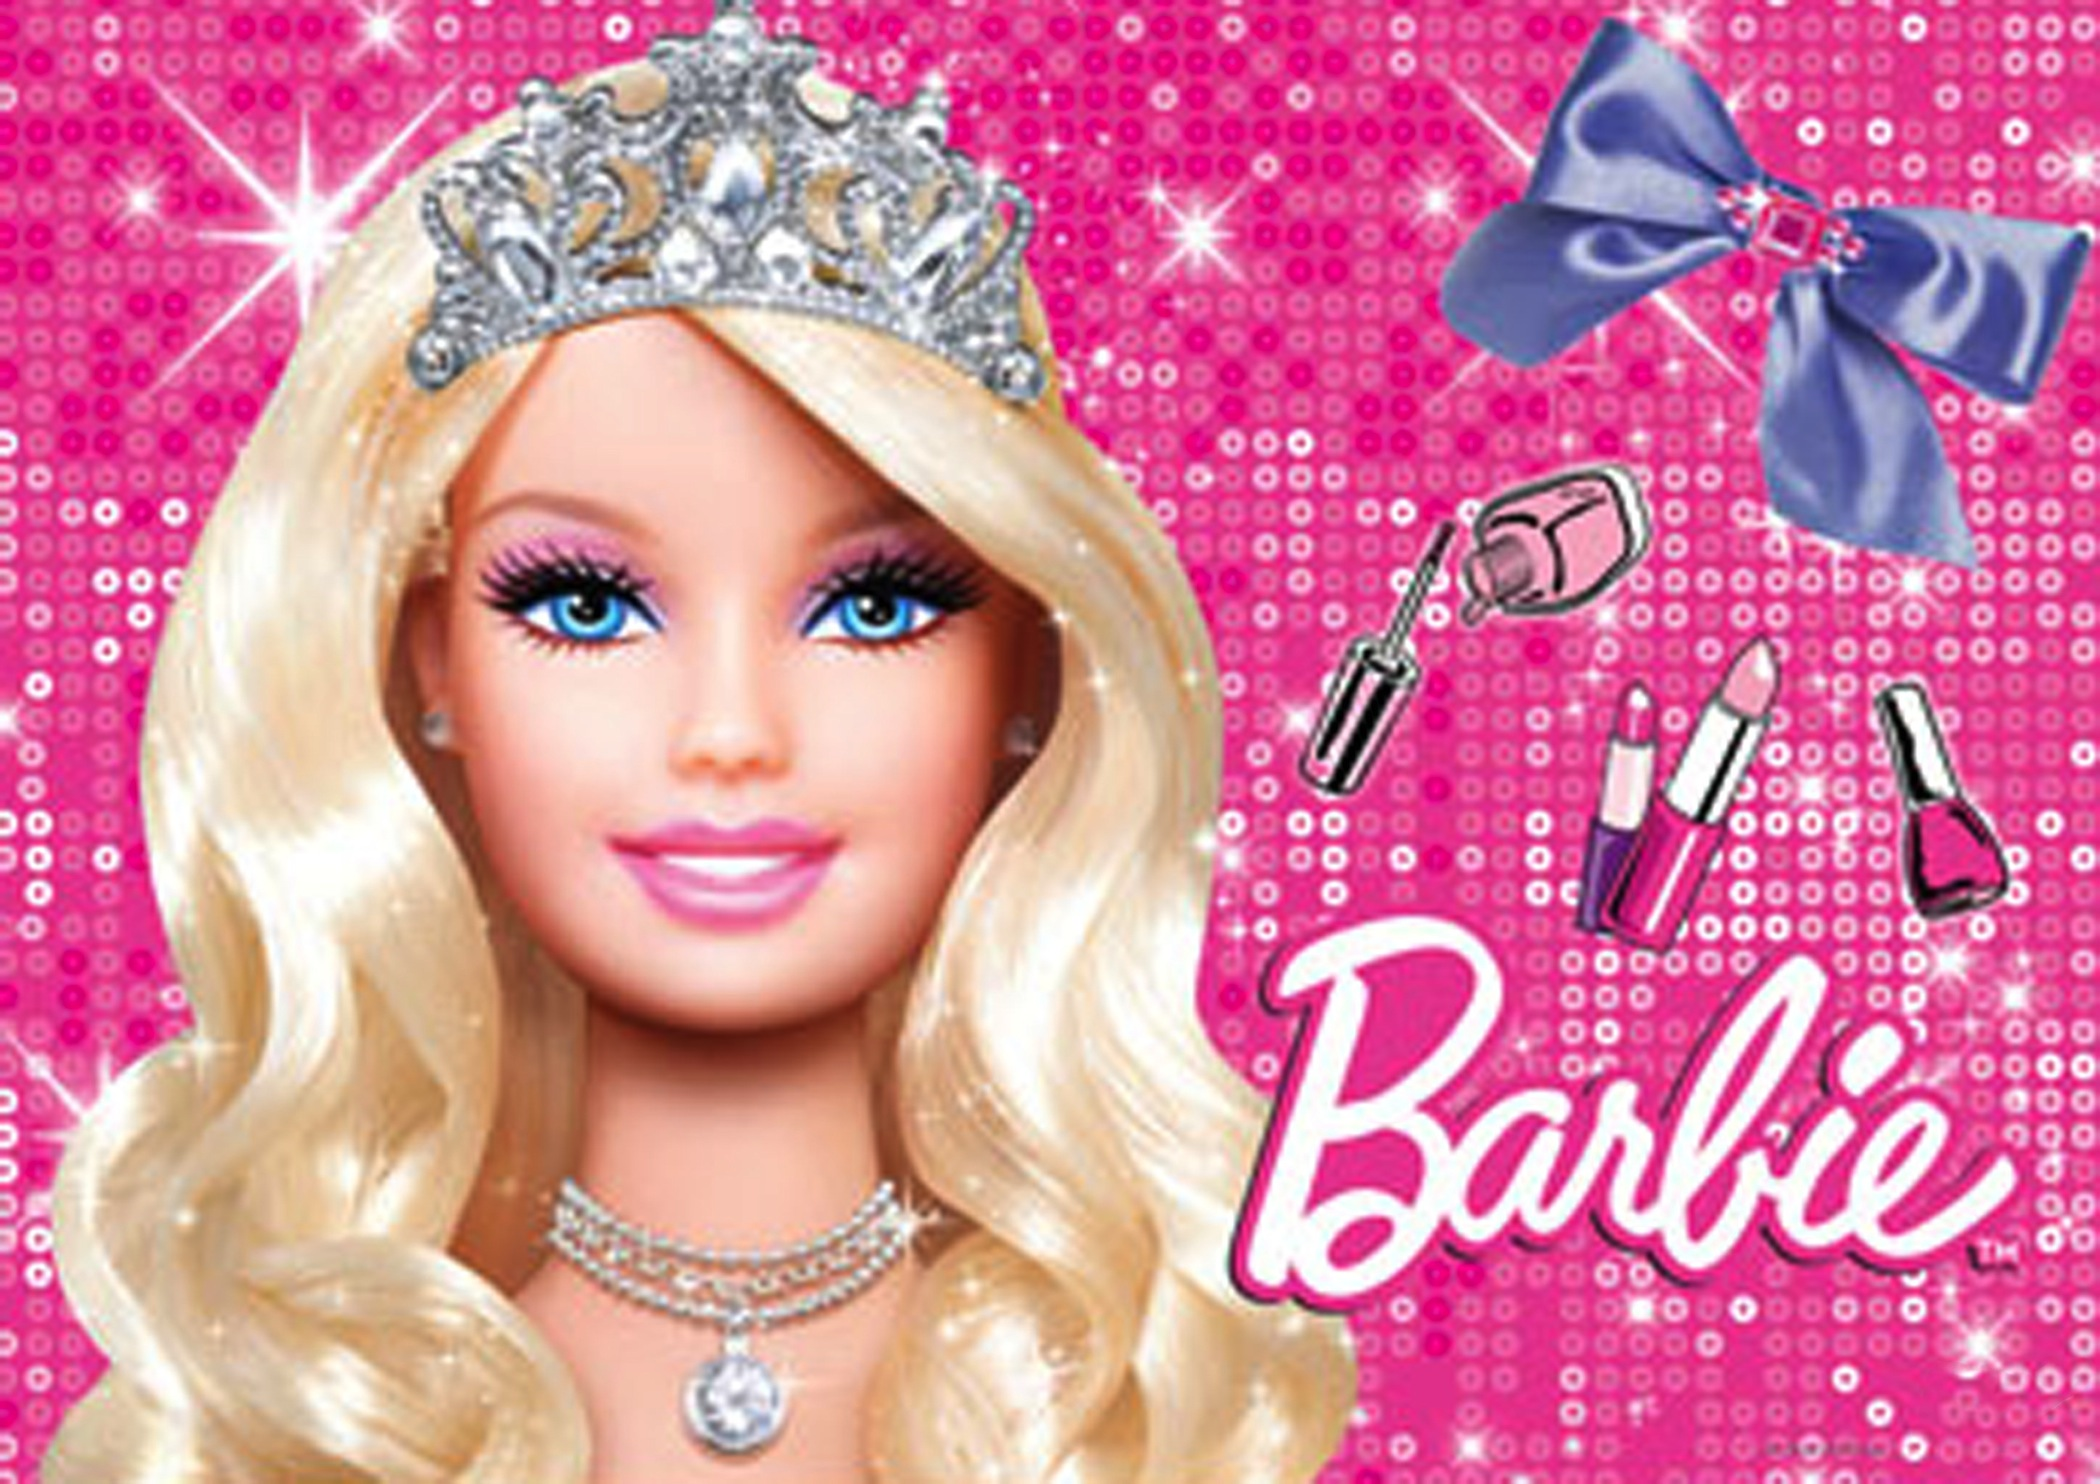 Barbie Princess Makeup